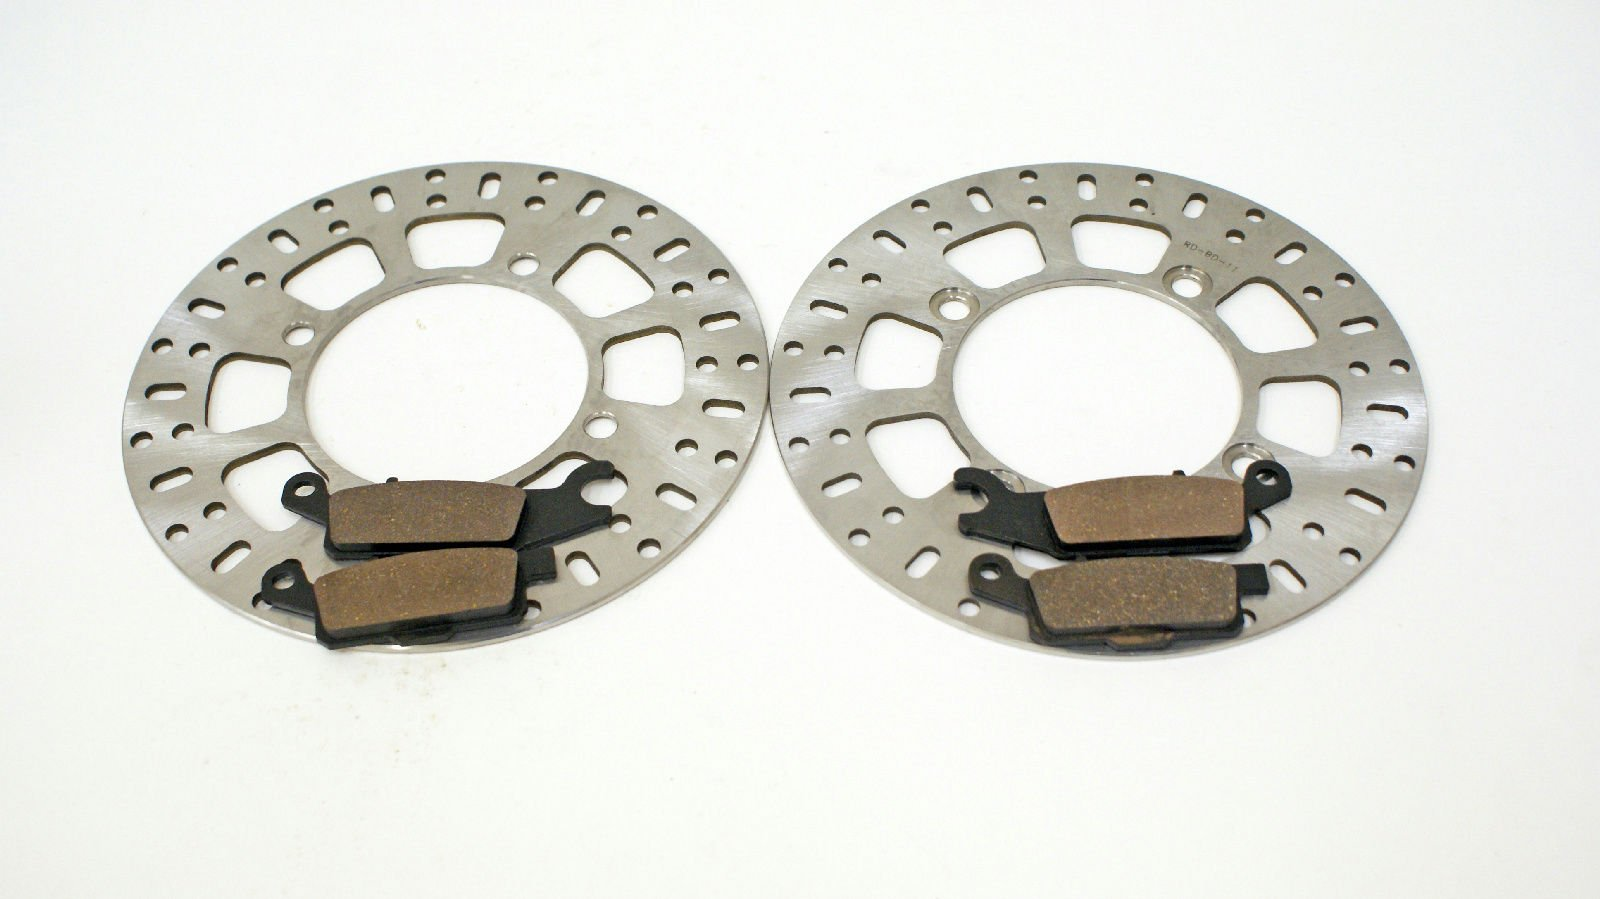 2011 2012 2013 Yamaha 700 Grizzly YFM700 Front Brakes Brake Pads & Brake Rotors by CycleATV